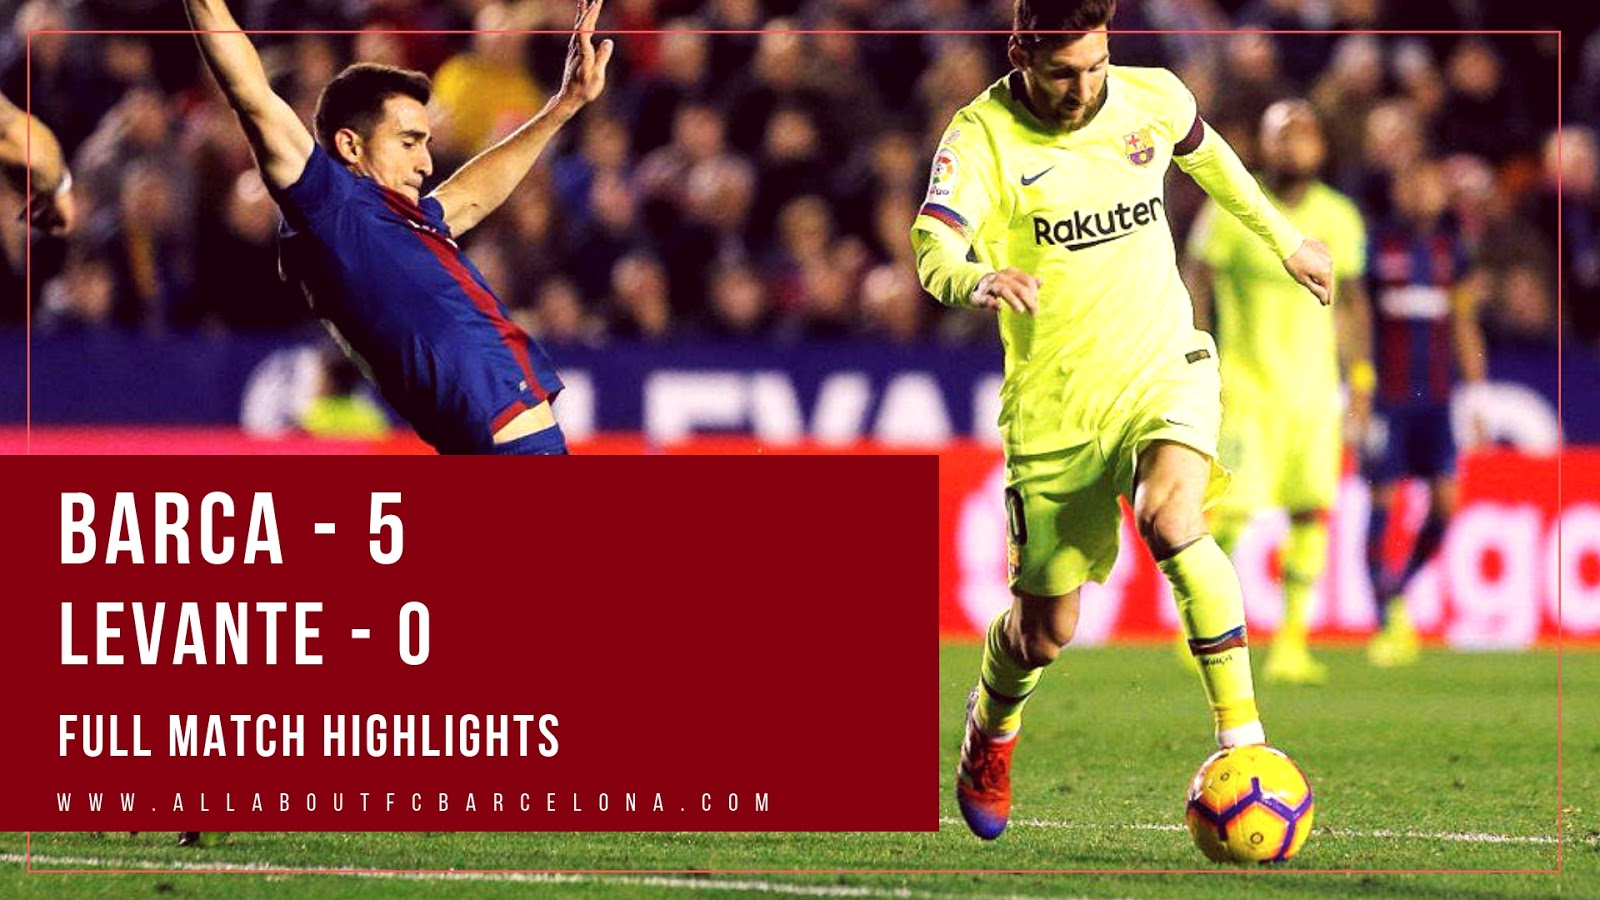 Barca vs Levante Full Match Highlights | Barca - 5 , Levante - 0